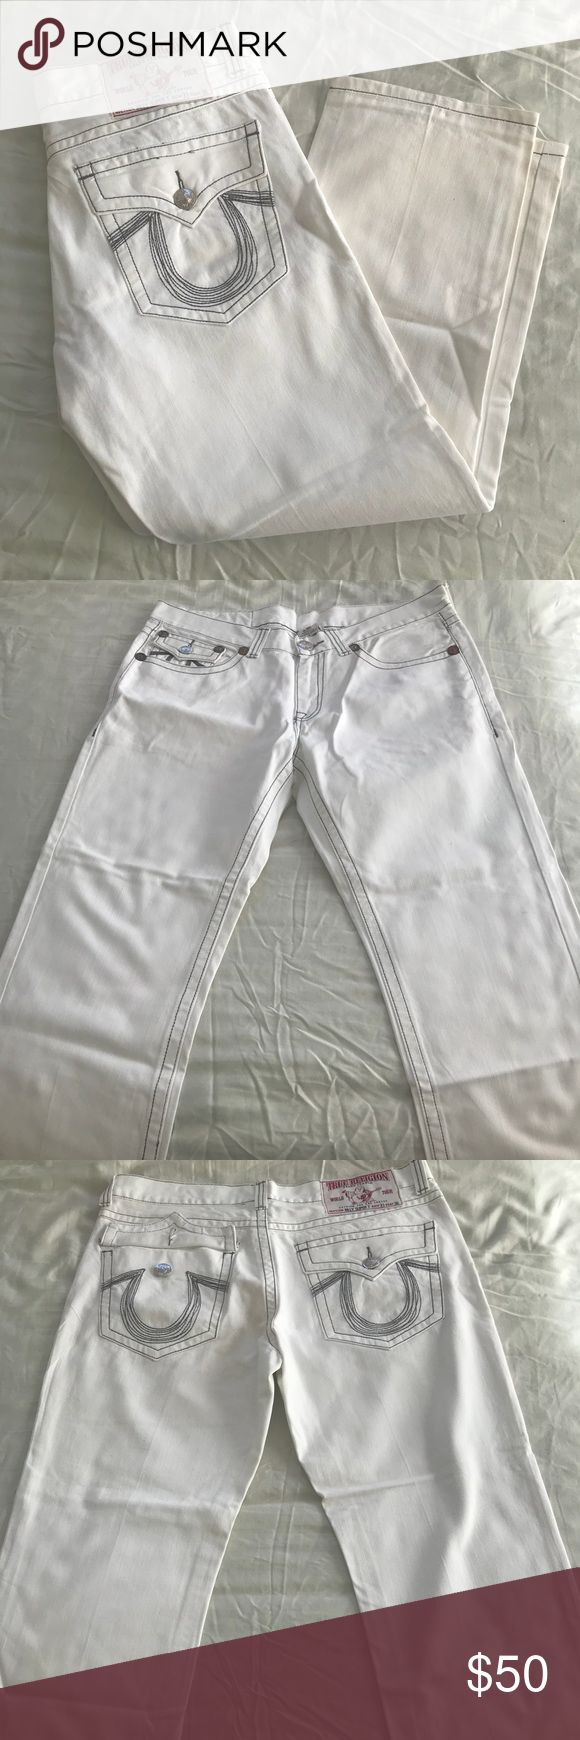 White Mens True Religion Jeans Here I have these Authentic Classic White Mens True Religion Jeans. These Jeans are a size 36 and are bootcut. Jeans have been worn twice and have been dry cleaned. These Jeans are free of smell and free stains. Jeans comes with the the classic horseshoe logo with grey stitching. Jeans would be perfect for dressing up with a nice button down shirt to a semi formal or casual event. True Religion Jeans Bootcut